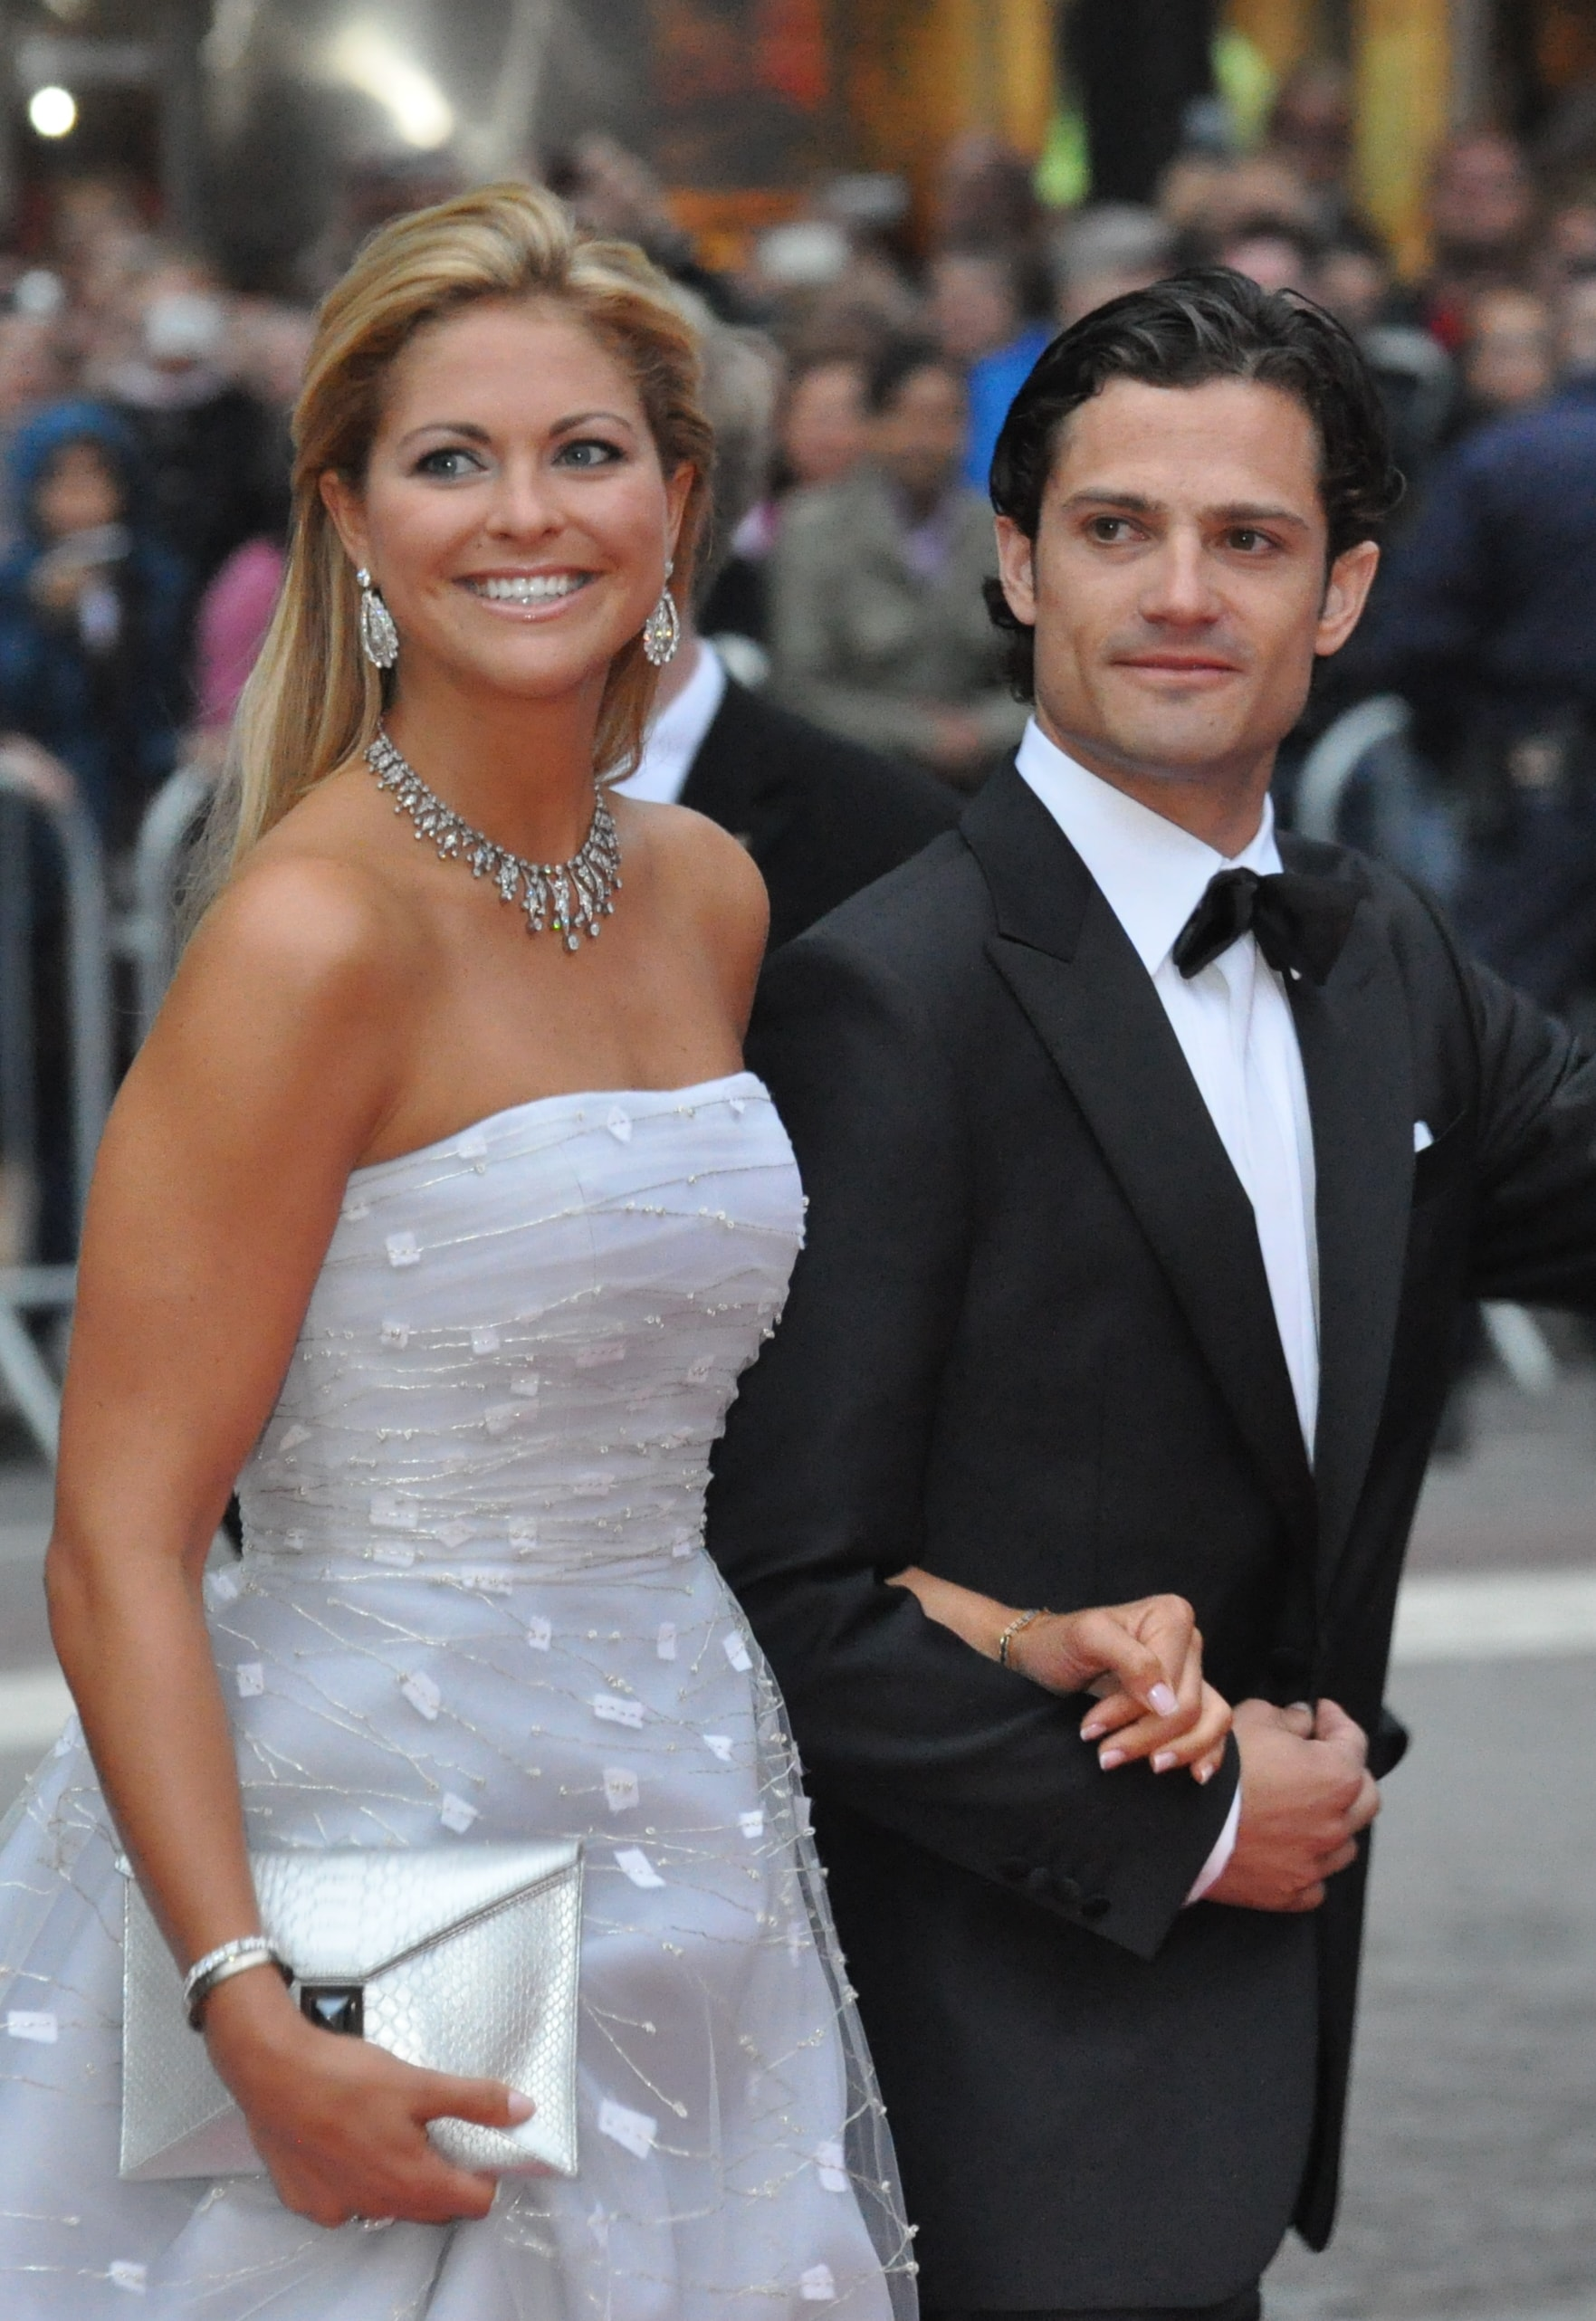 Princess Madeleine of Sweden ridiculous facts about Europe